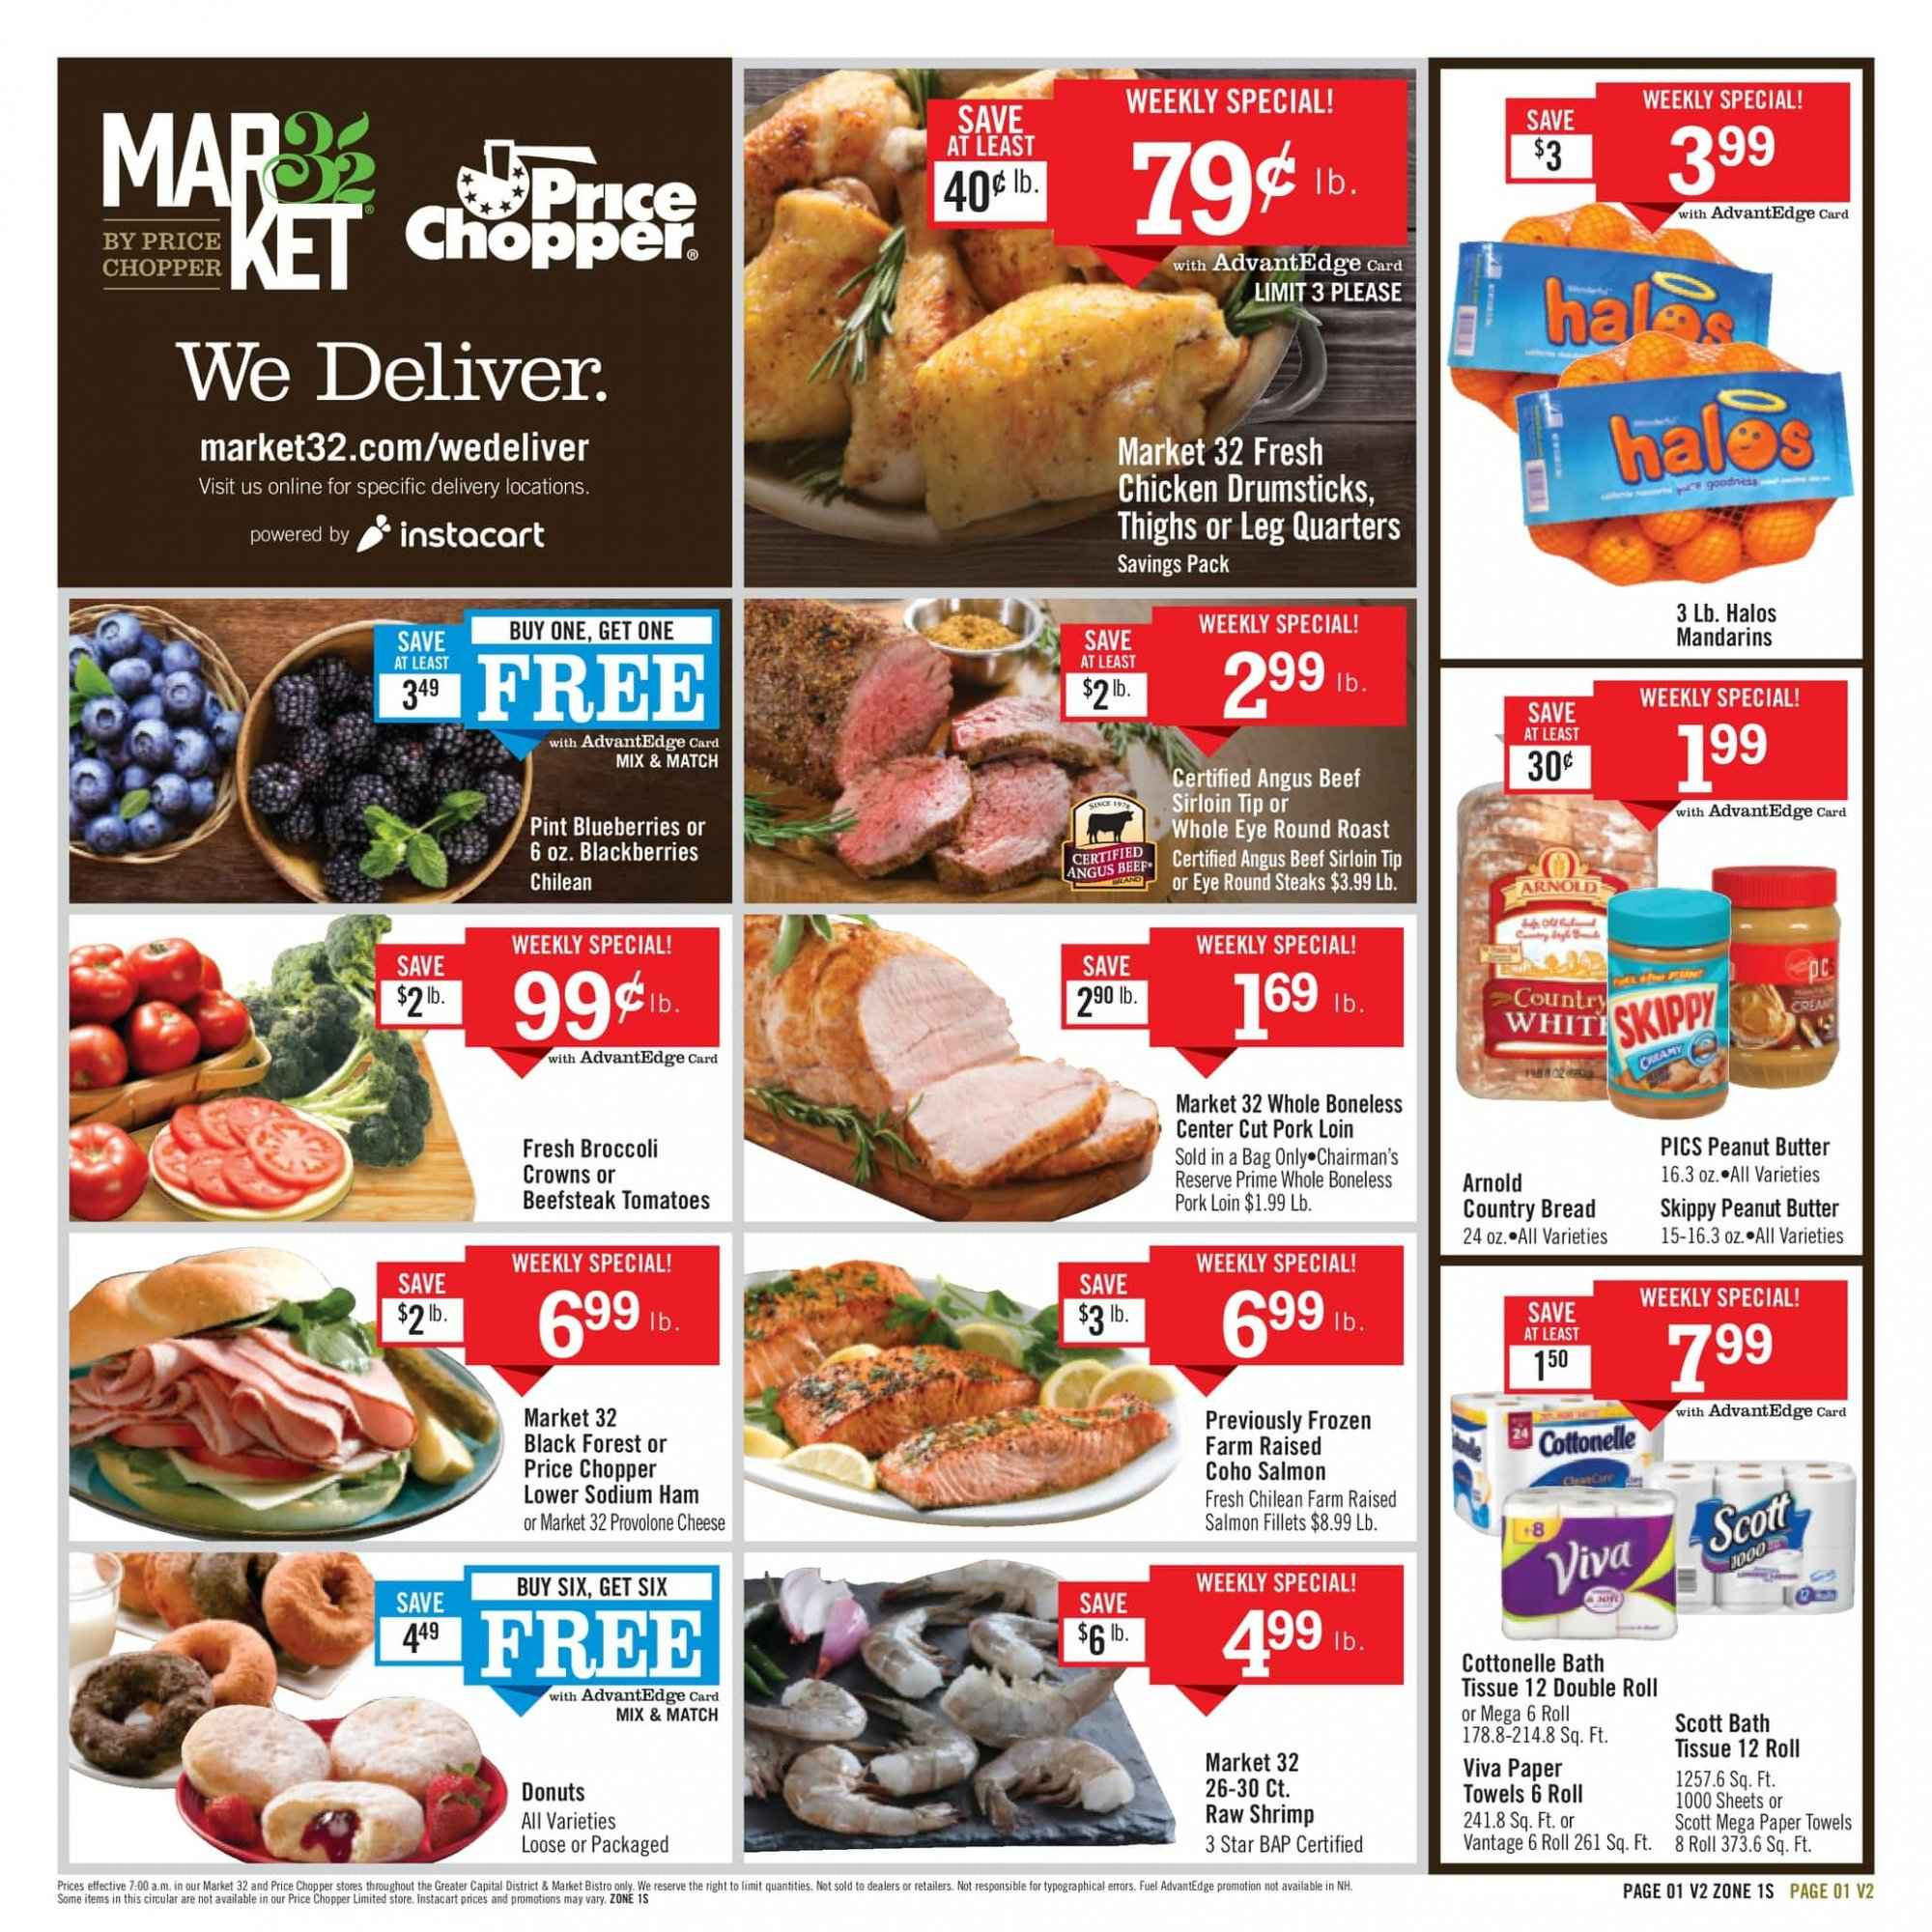 Price Chopper Flyer - 02.03.2019 - 02.09.2019 - Sales products - blackberries, blueberries, bread, donut, salmon, salmon fillet, shrimps, ham, cheese, Provolone, peanut butter, chicken, chicken drumsticks, chicken meat, beef meat, beef sirloin, steak, round roast, pork loin, pork meat, bath tissue, Cottonelle, kitchen towels, paper towels. Page 1.